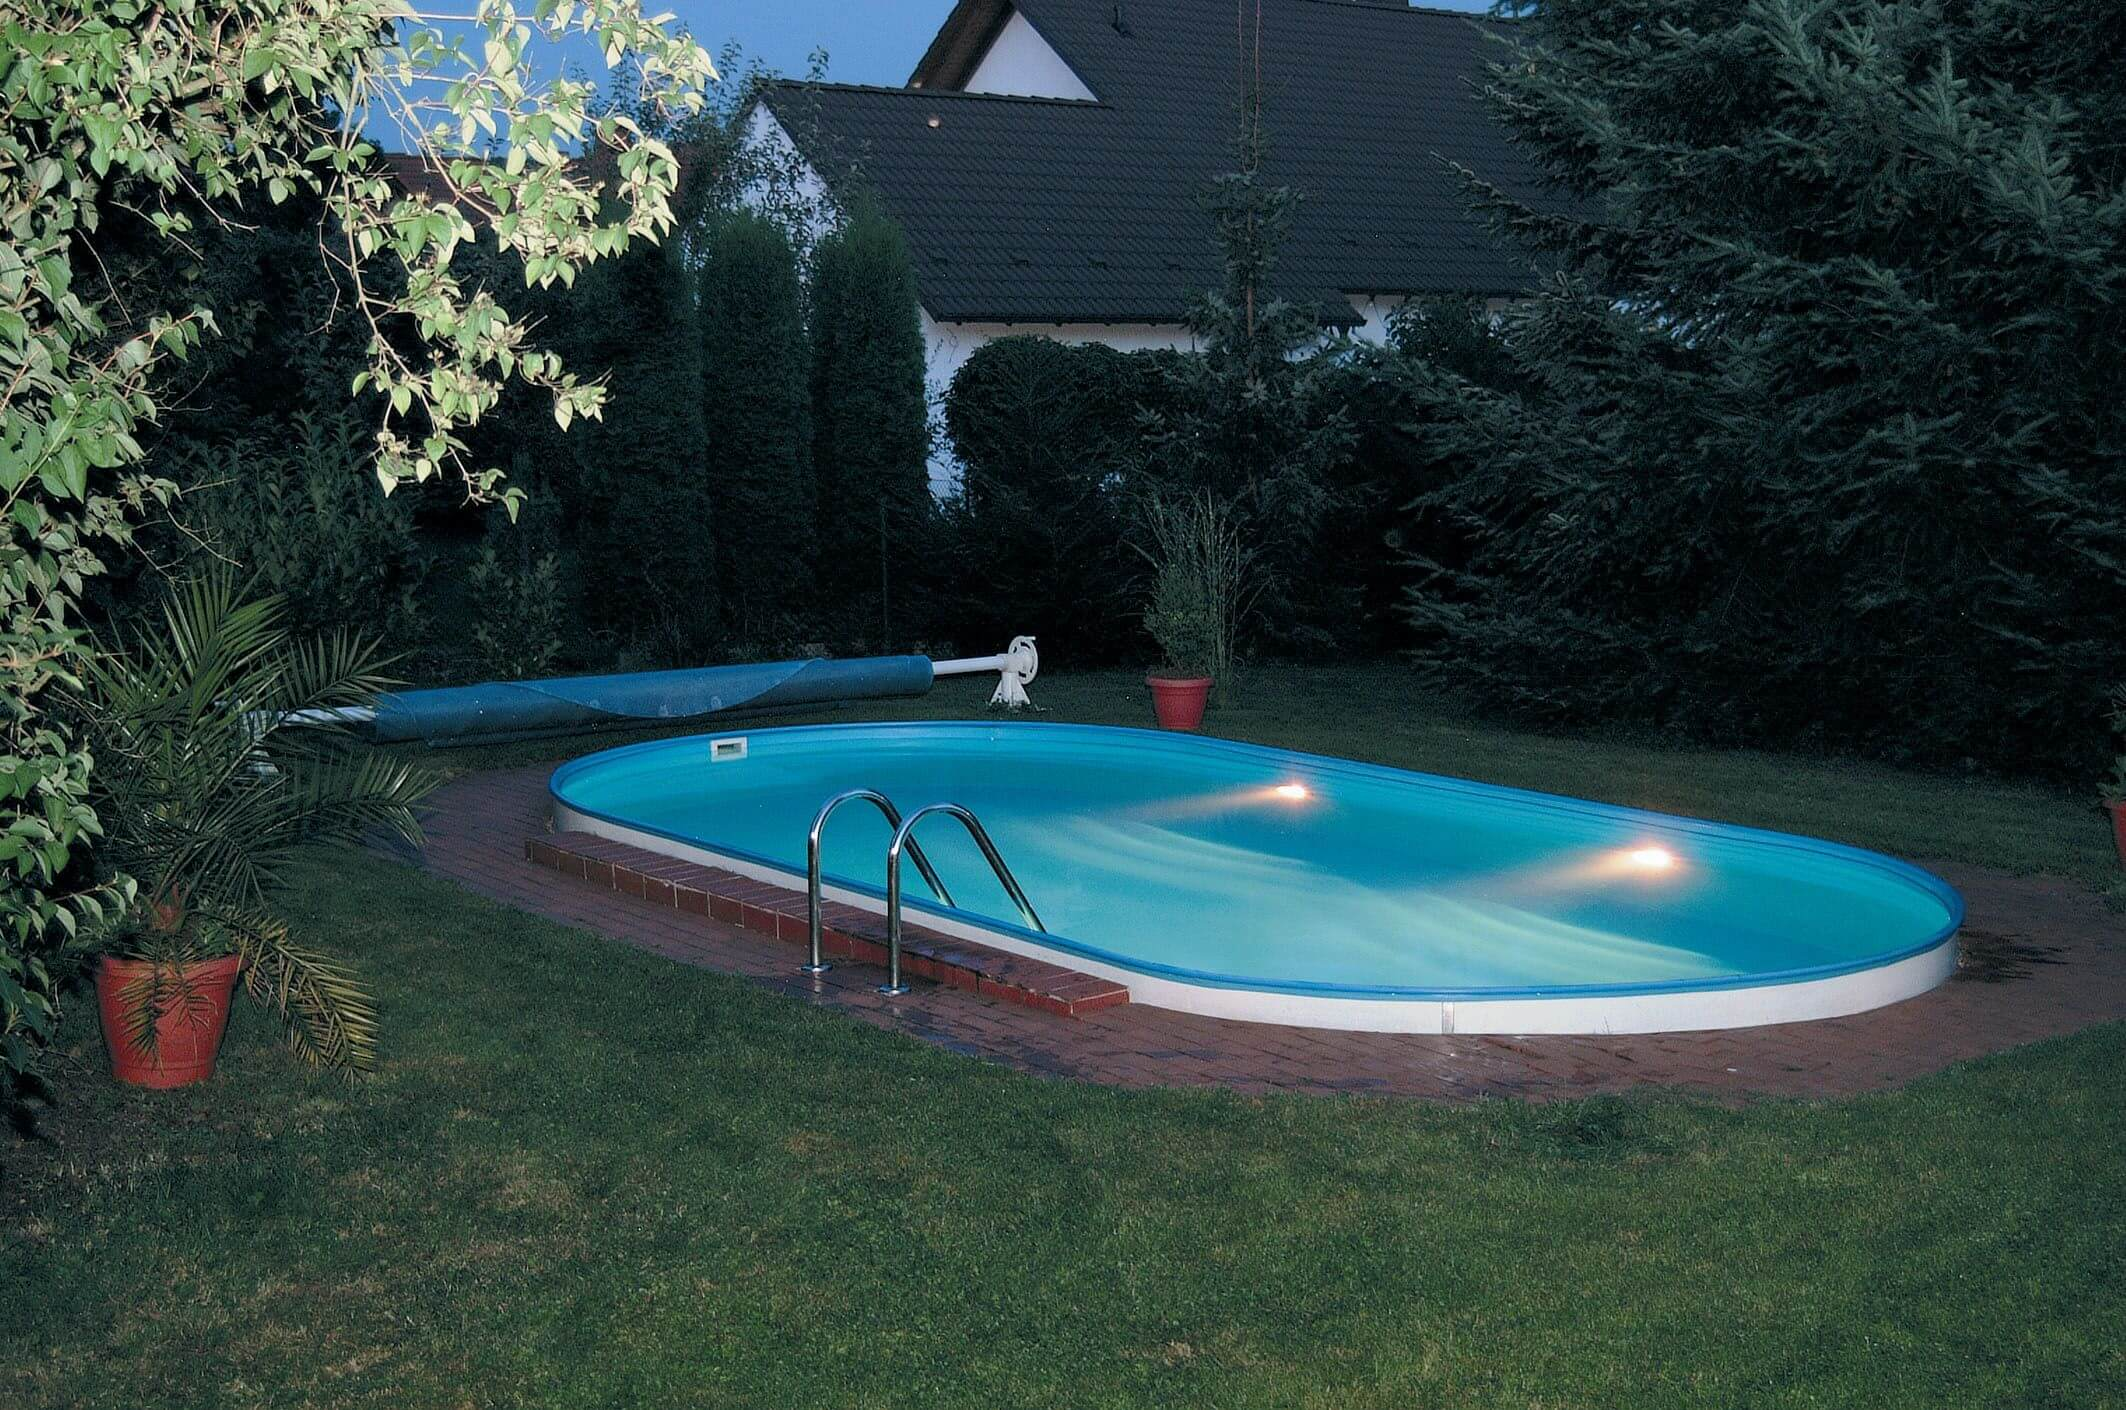 Solarplane Pool 700 X 350 Apoolco Onlineshop Für Pool Wellness